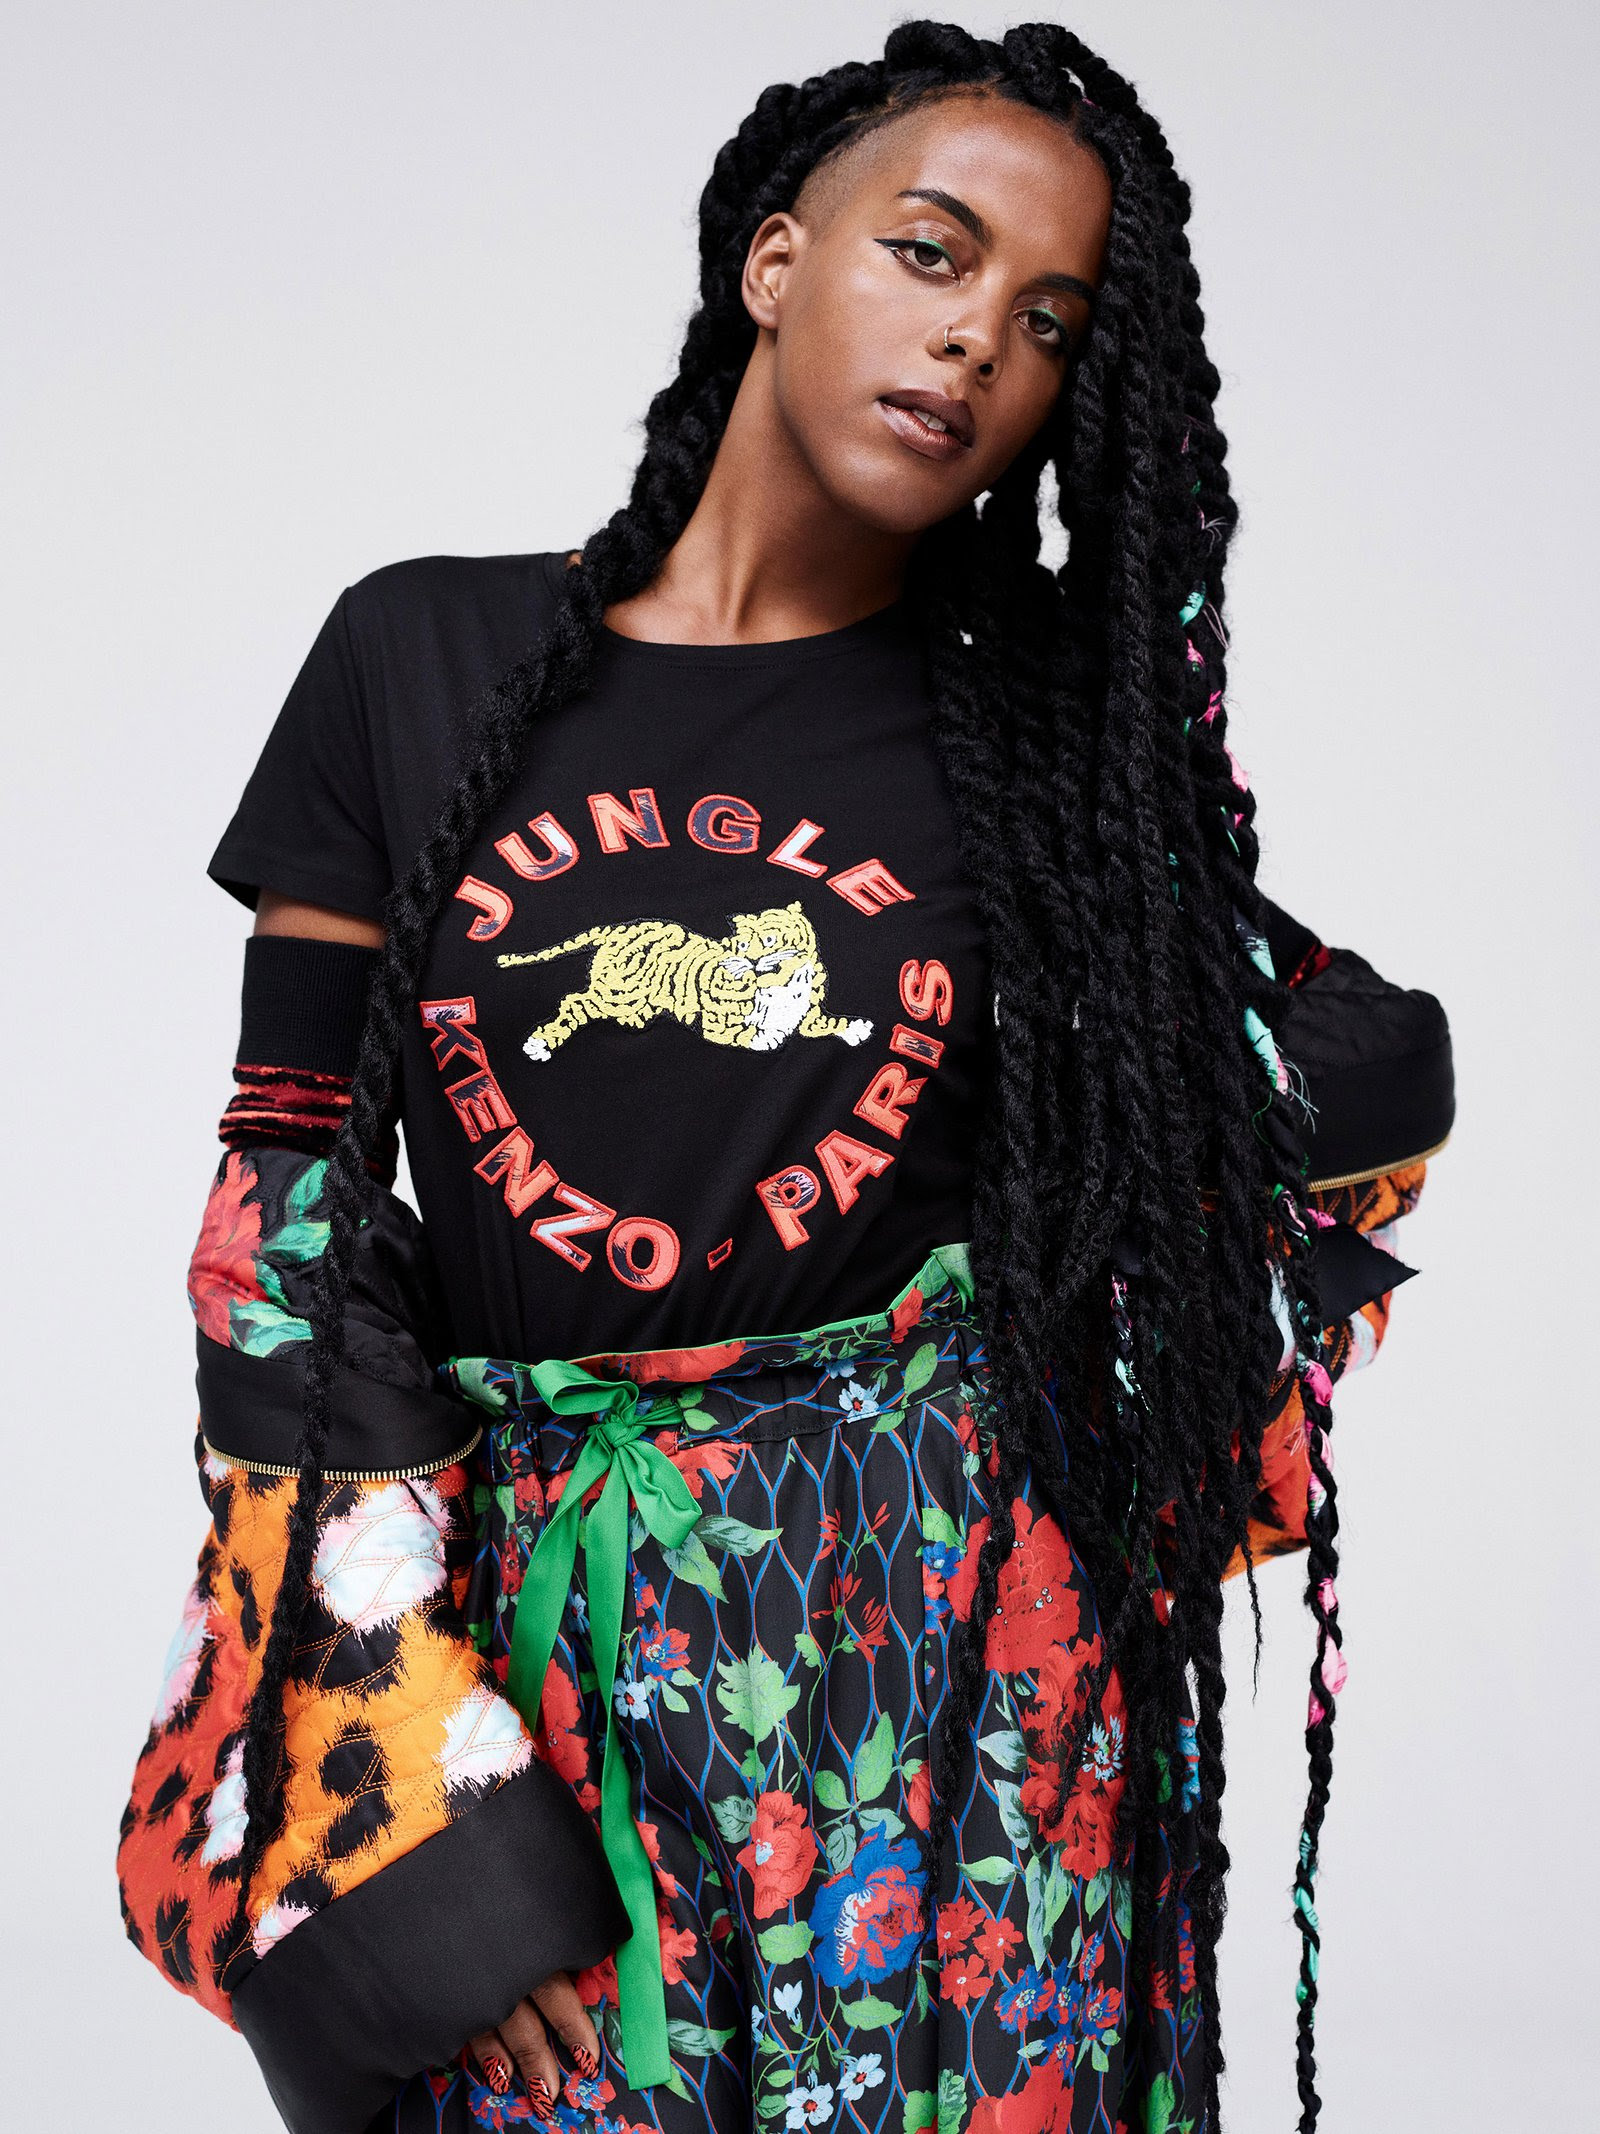 http://media.vogue.com/r/w_1600//wp-content/uploads/2016/10/07/06-kenzo-hm-lookbook.jpg